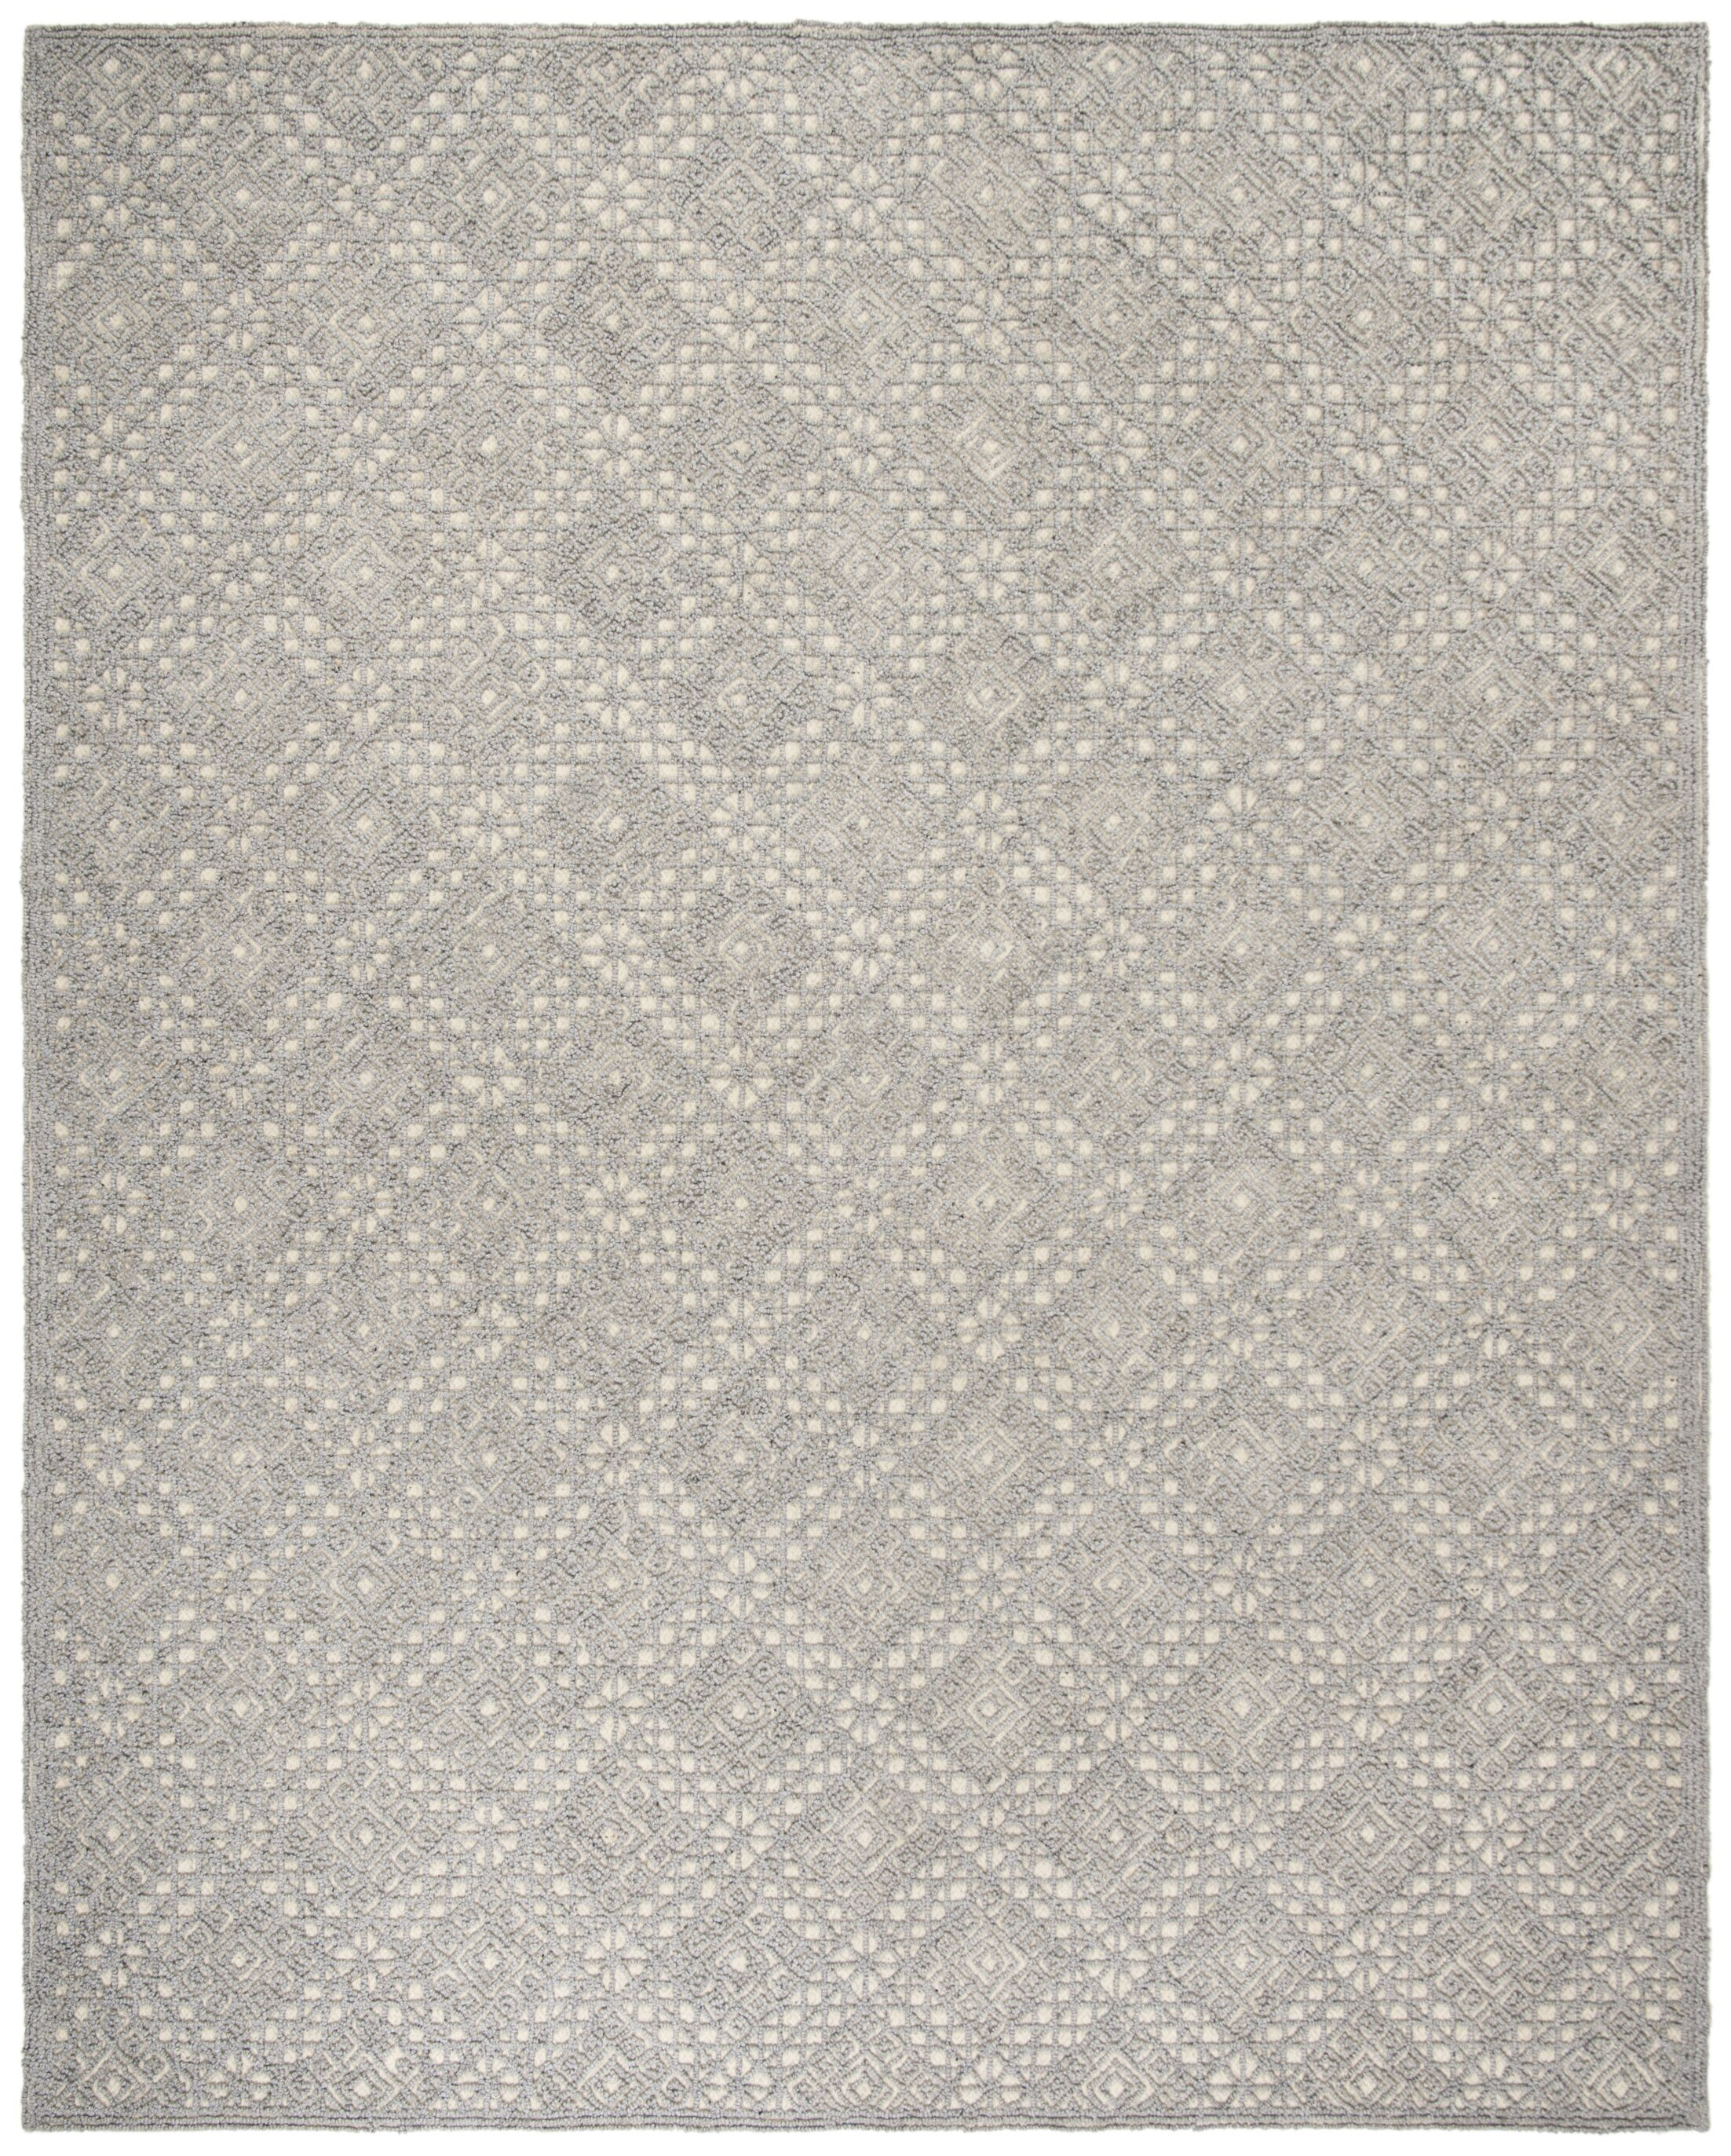 Saranac Hand-Tufted Wool Gray Area Rug Rug Size: Rectangle 8' x 10'